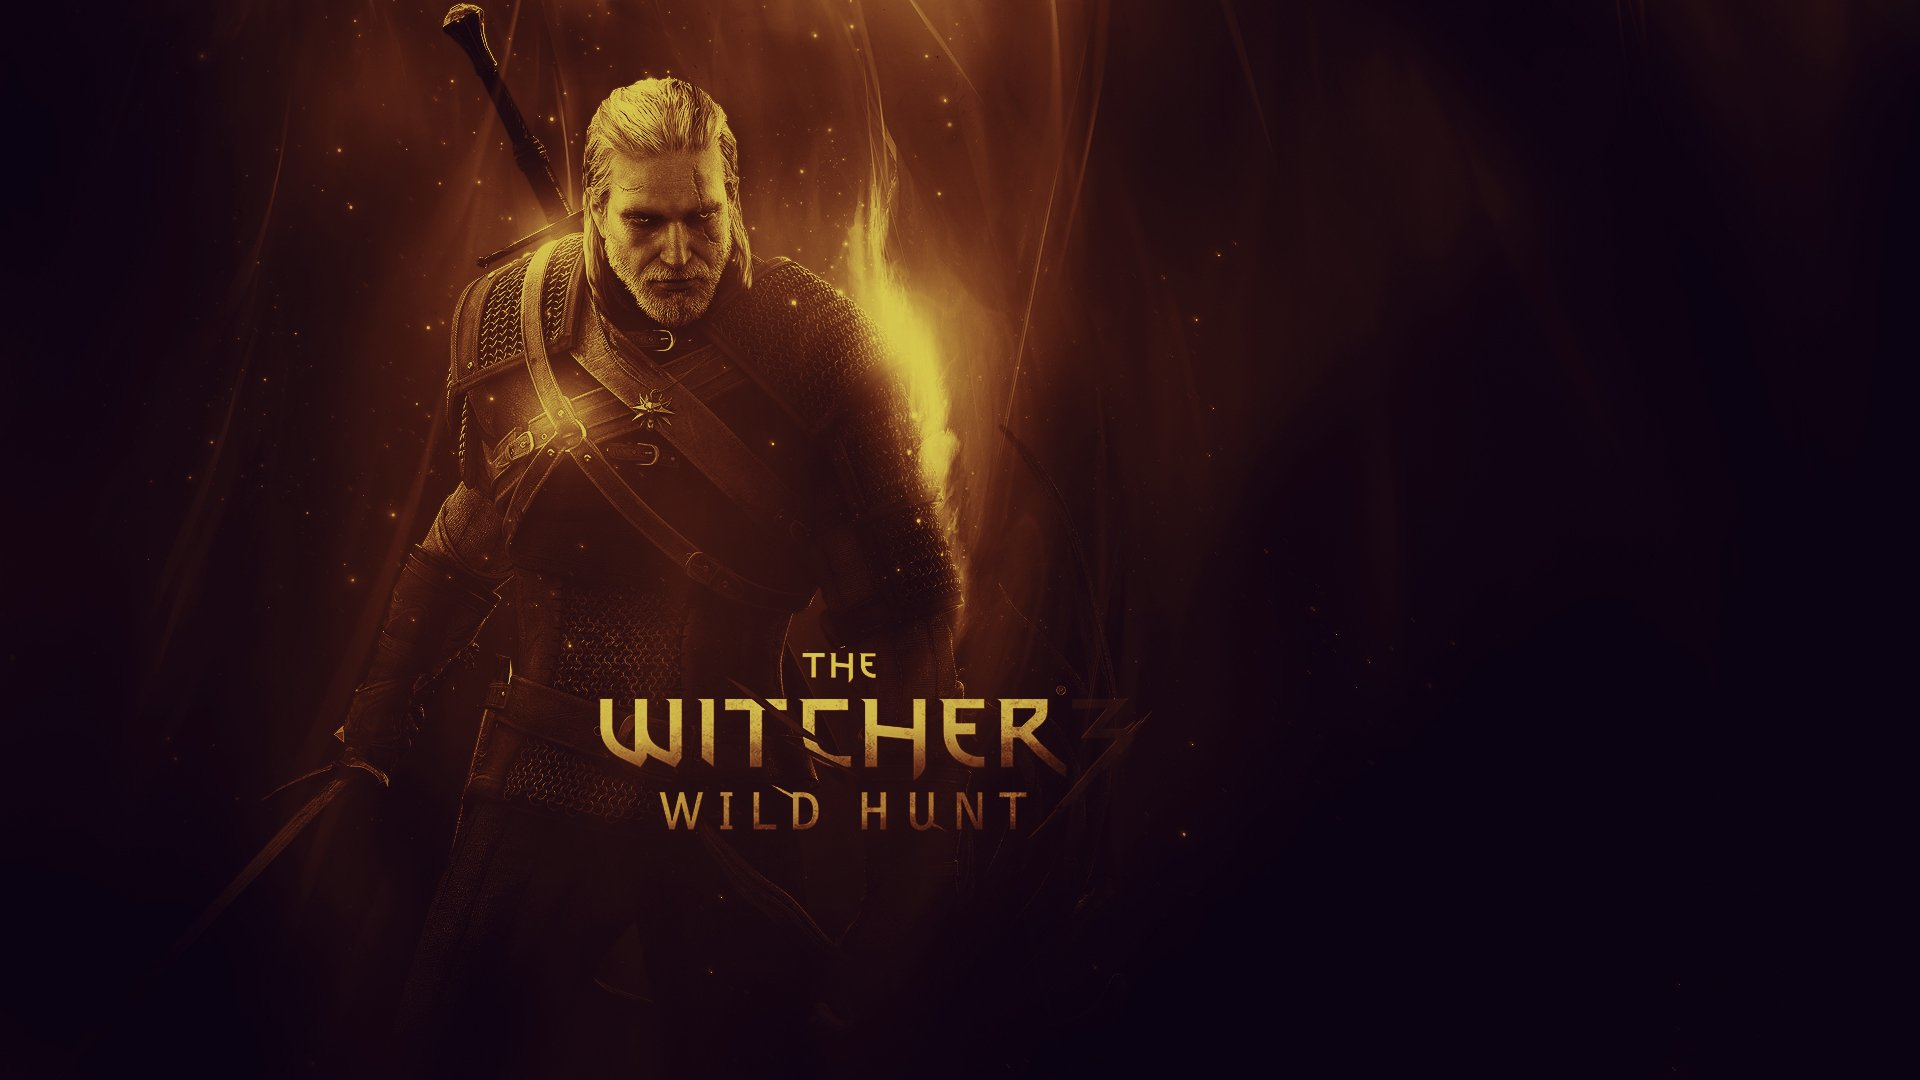 Все за прошедшее время о The Witcher 3: Wild Hunt  The Witcher 3: Wild Hunt на Е3.   На Е3 CD Projekt RED привезли н ... - Изображение 1